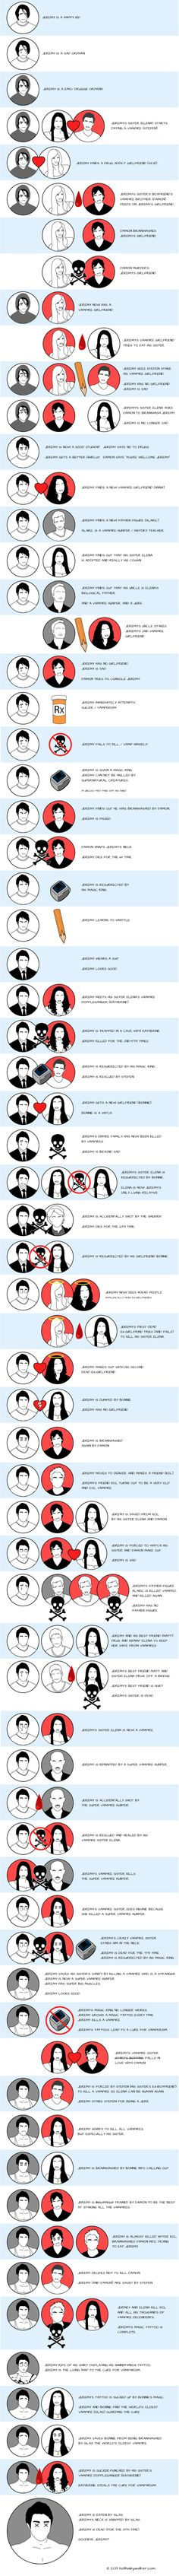 The Life and Plot Twists of Jeremy Gilbert...until he's a living person again in S5 and hopefully for all of S6, but that might be asking just a bit much of tvd....